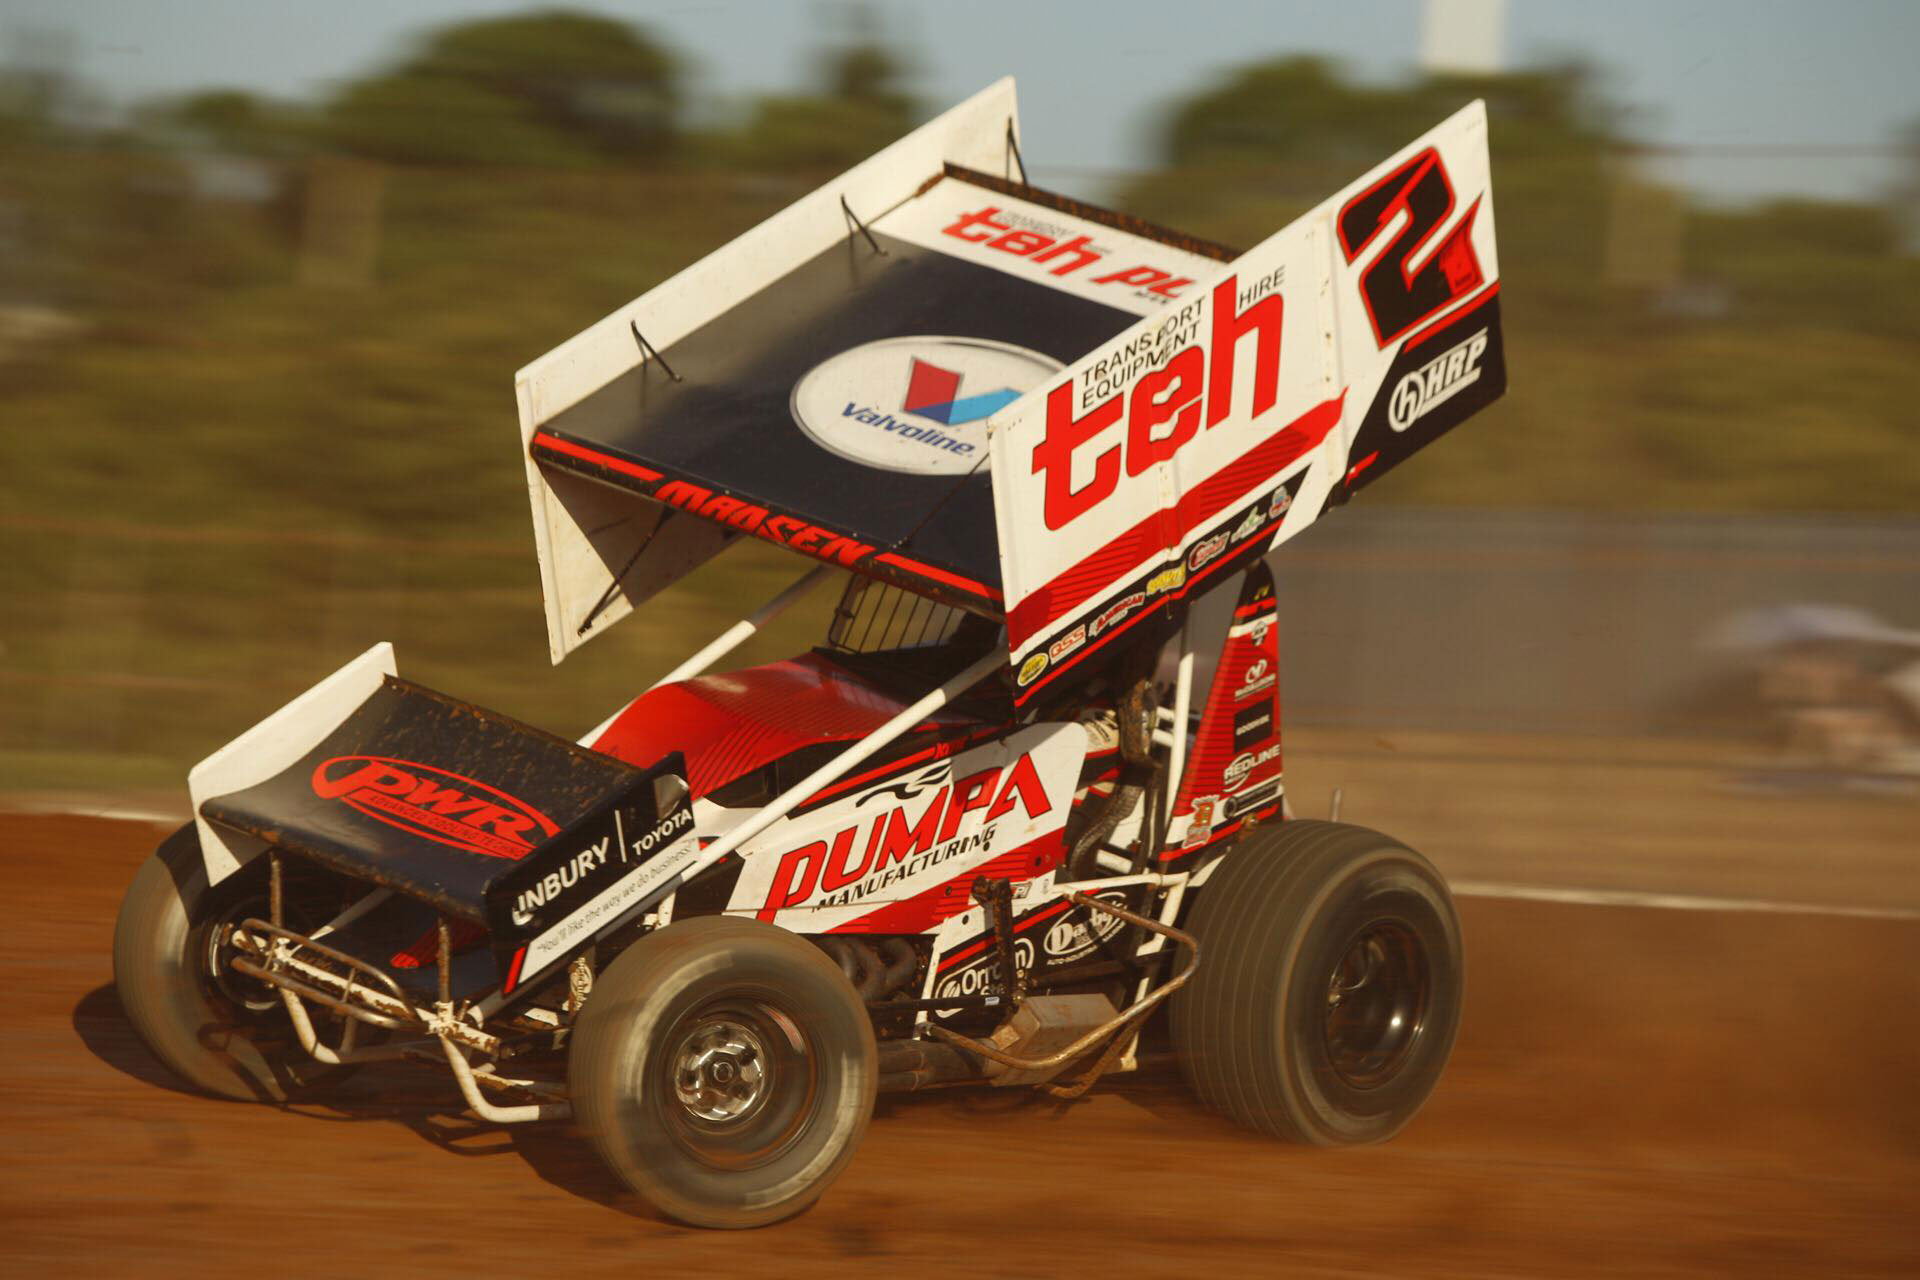 Strong Form for Madsen and KMS